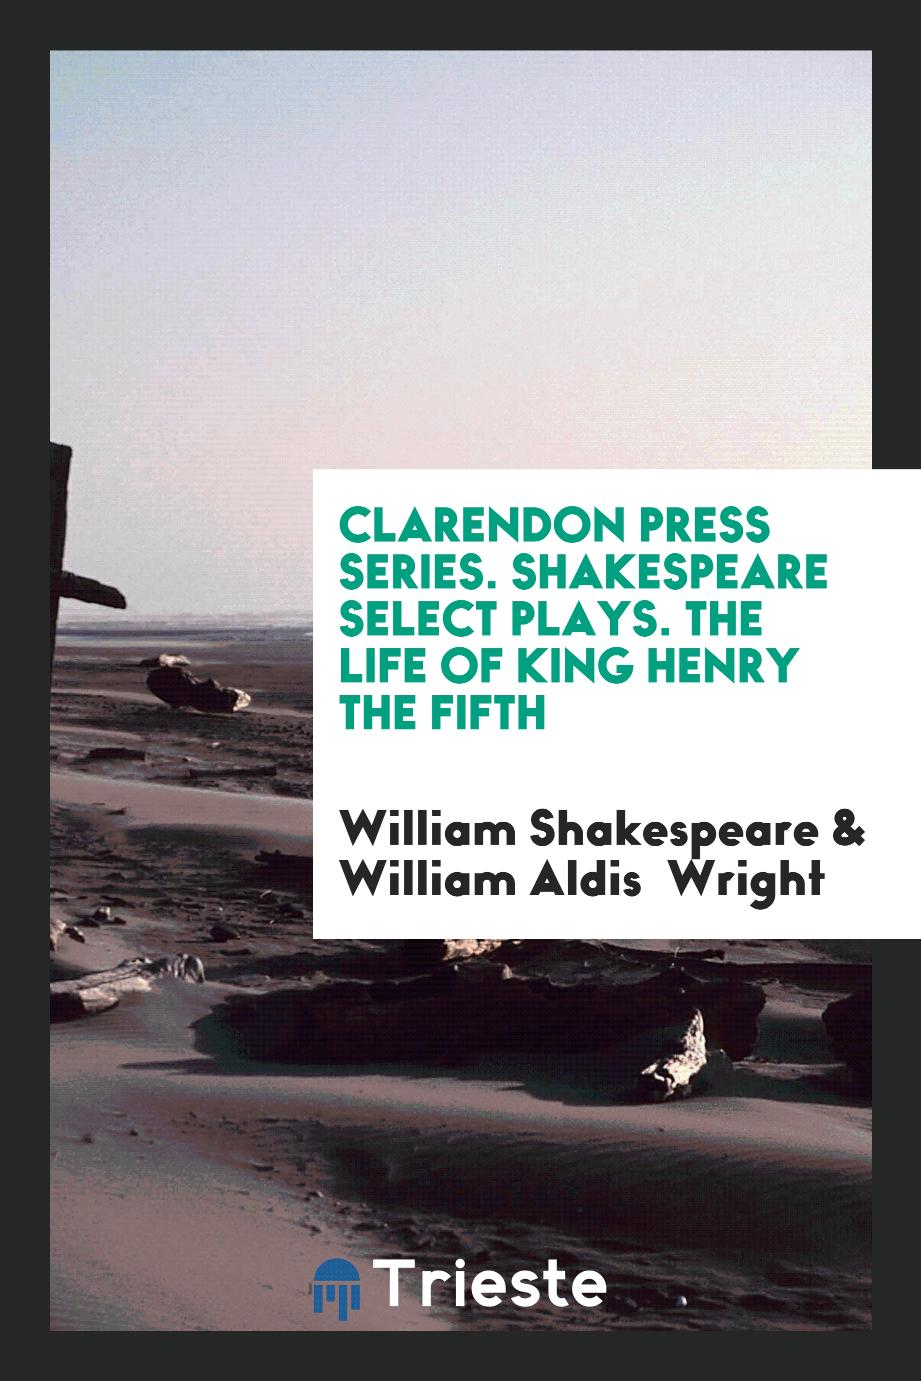 Clarendon Press Series. Shakespeare Select Plays. The Life of King Henry the Fifth